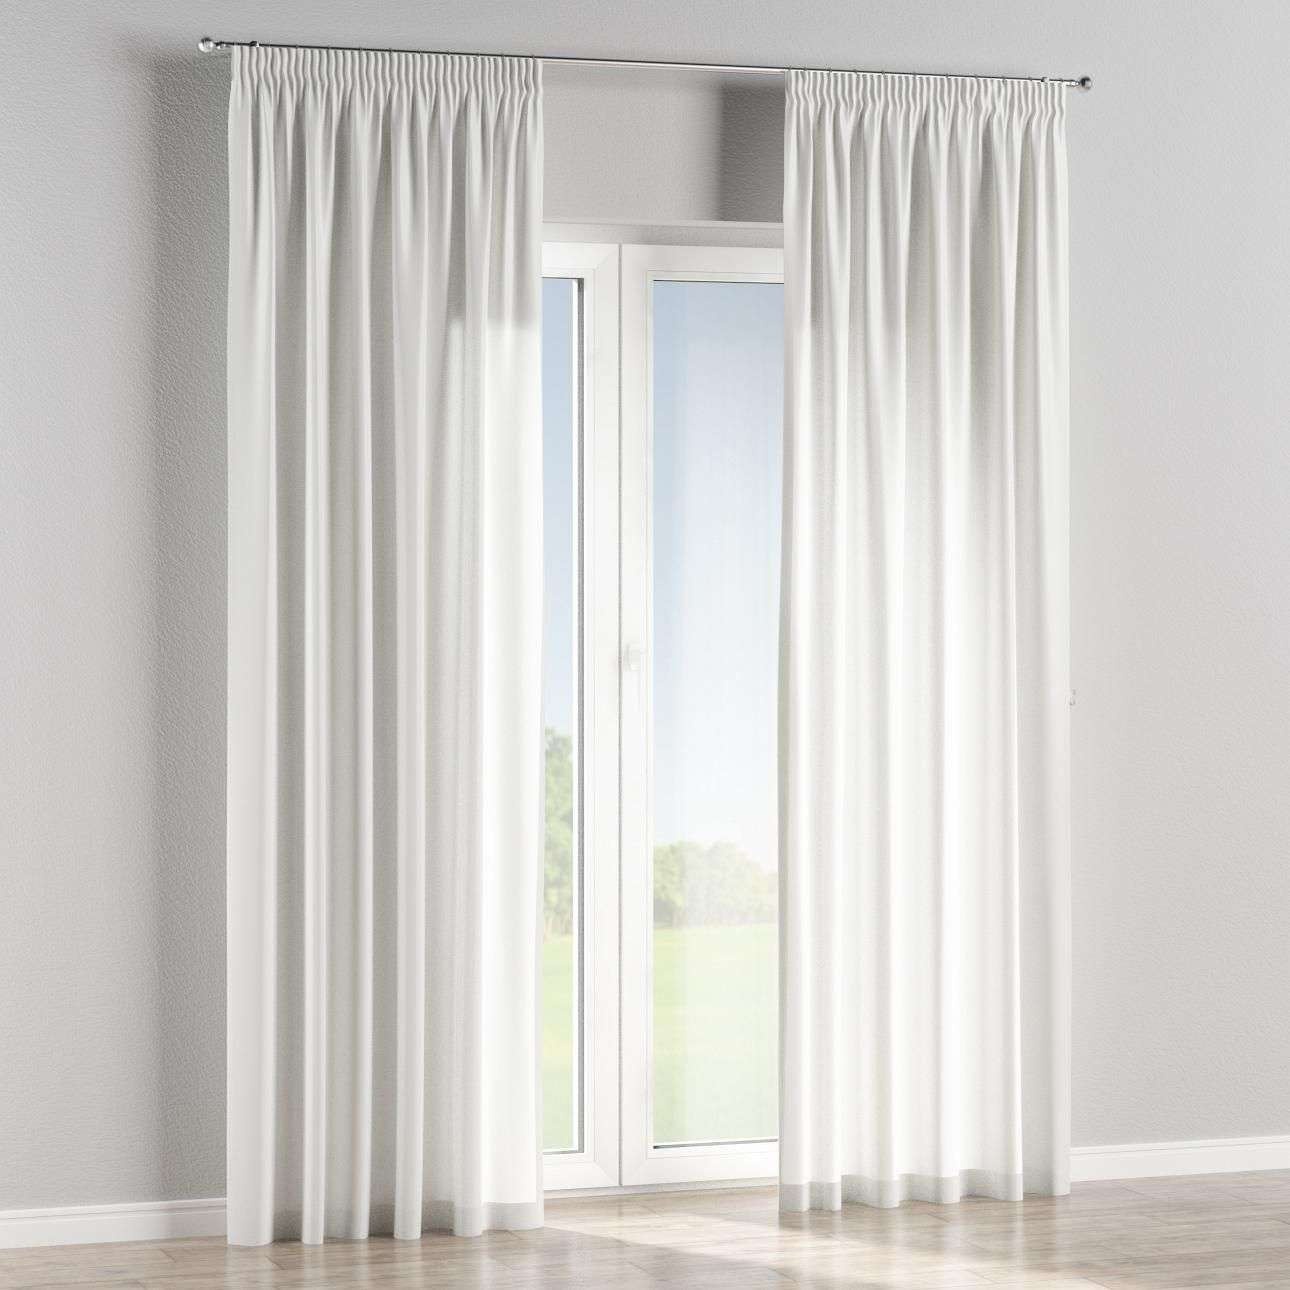 Pencil pleat lined curtains in collection Cotton Panama, fabric: 702-05